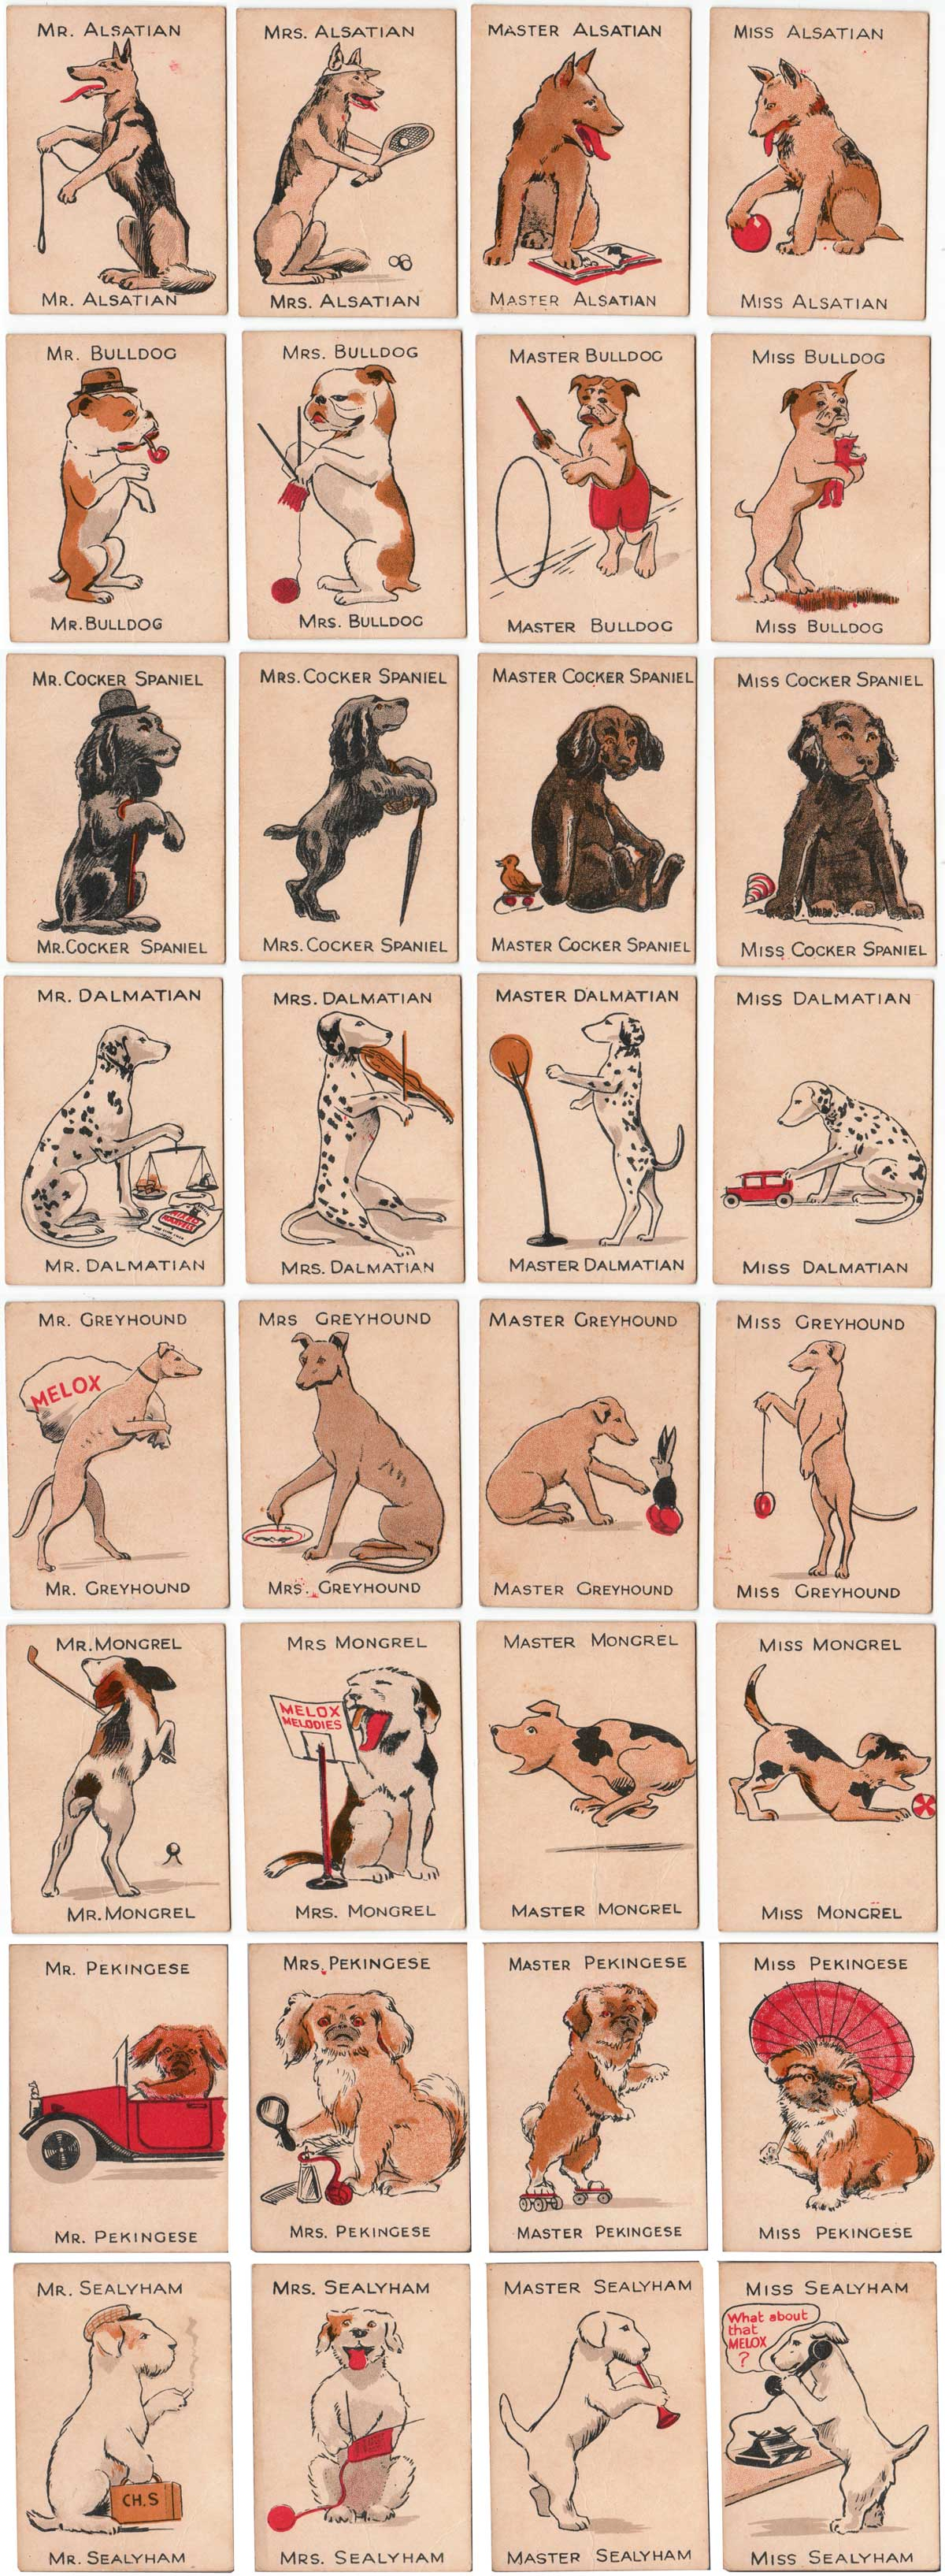 """The """"Game of Happy Melox Families"""" published by w G Clarke & Son, London, 1929"""